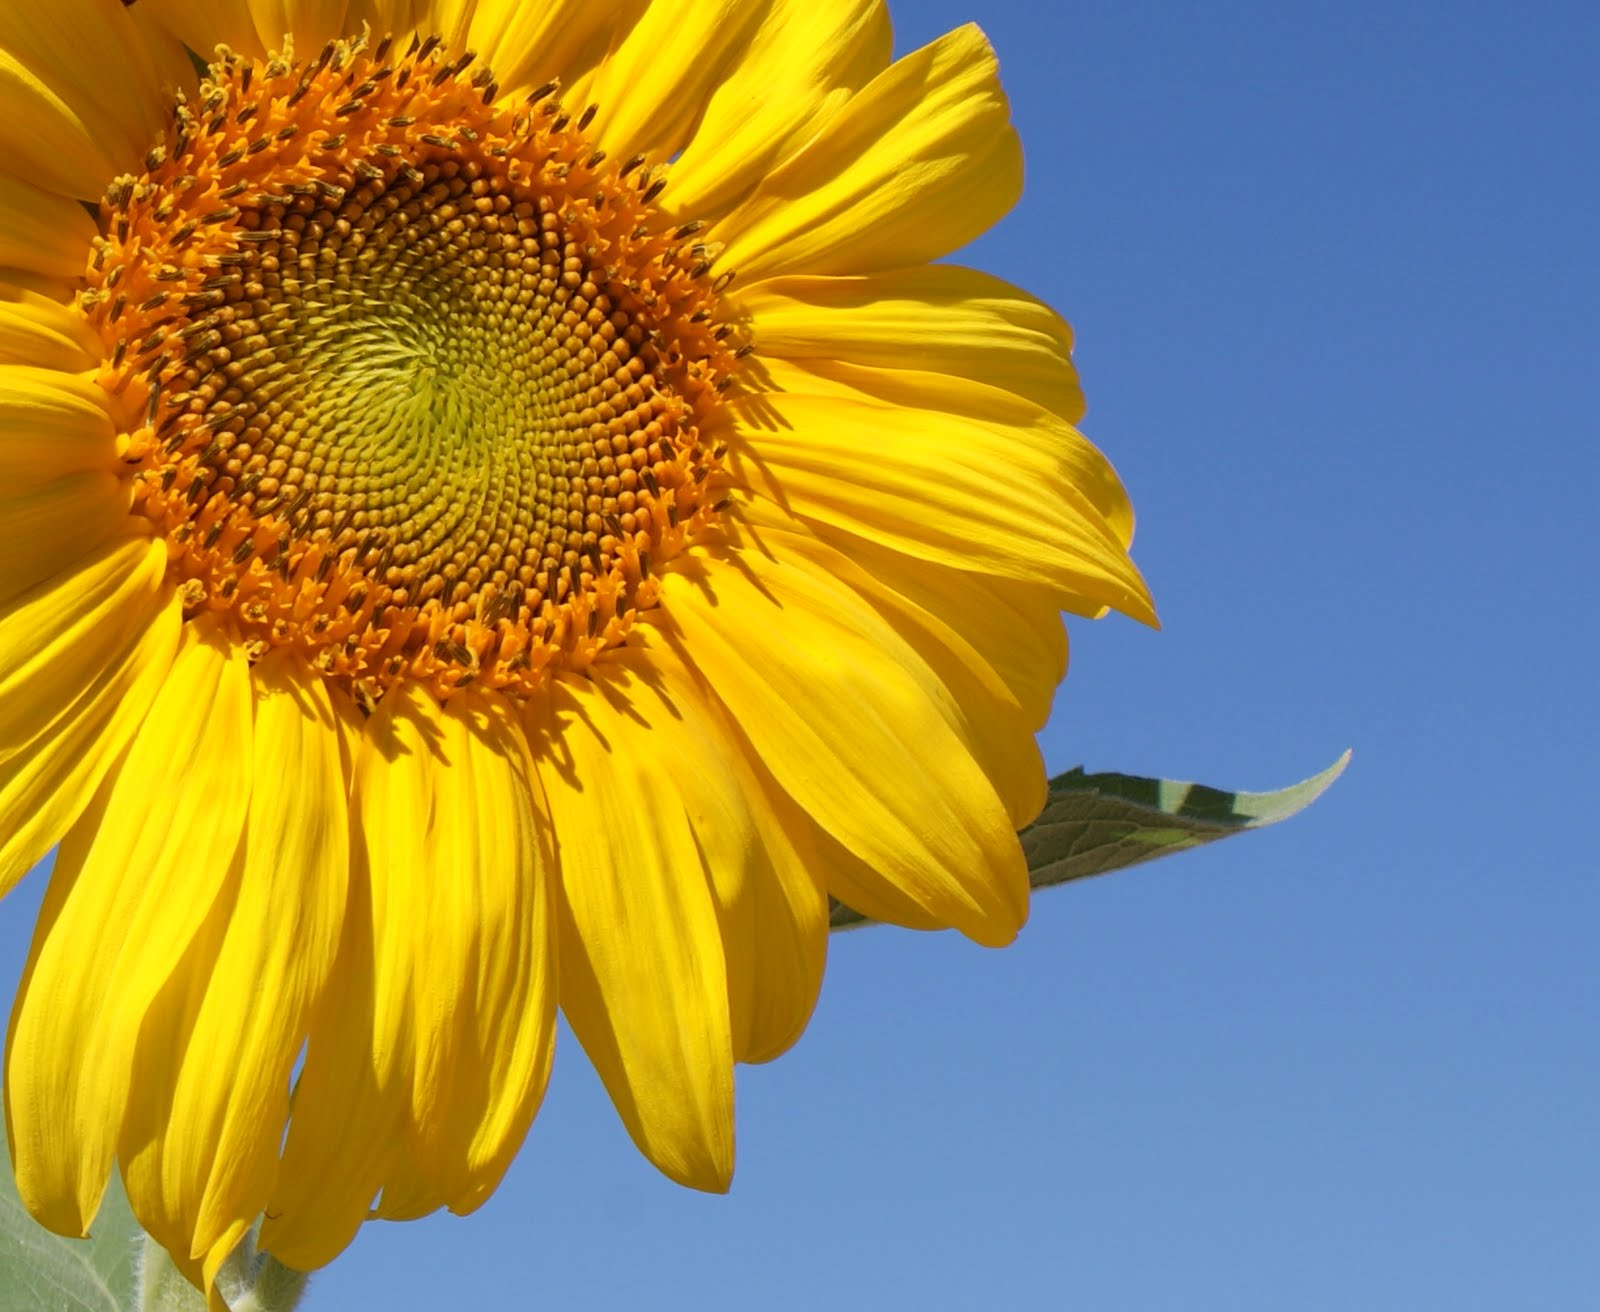 sunflower and blue sky bold colors drama seams